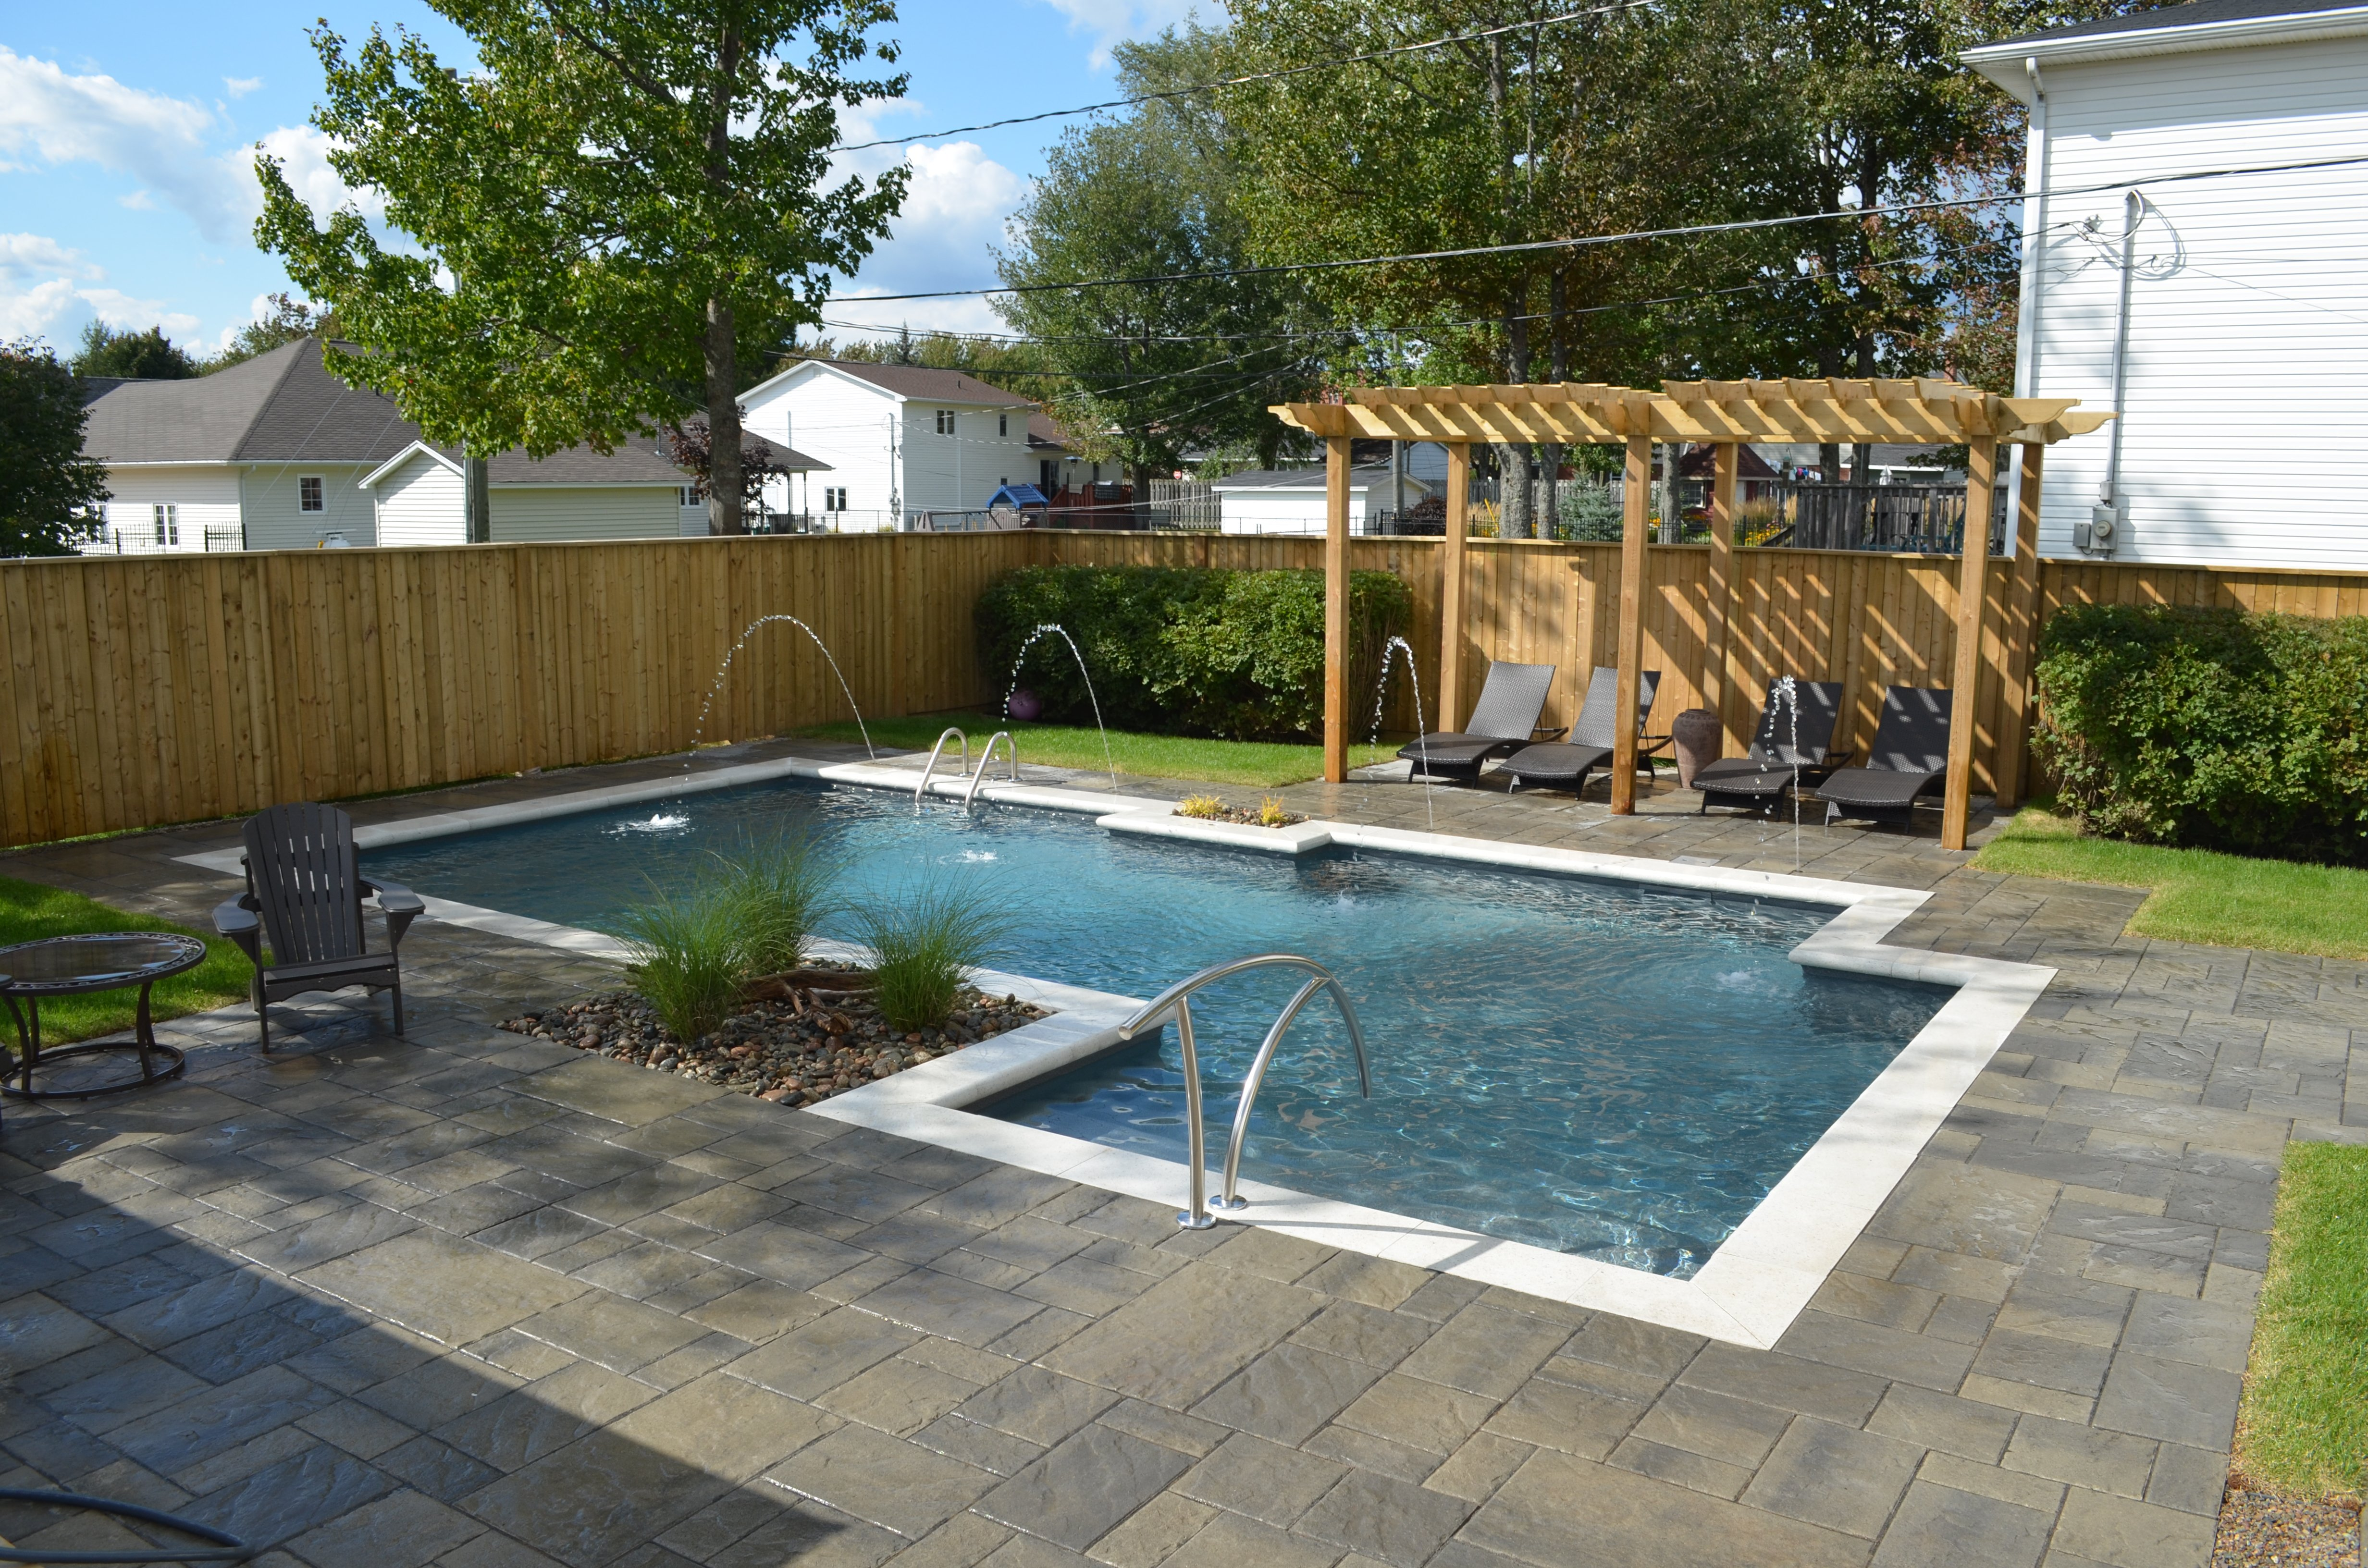 Top 10 pool buying mistakes for Pool design mistakes